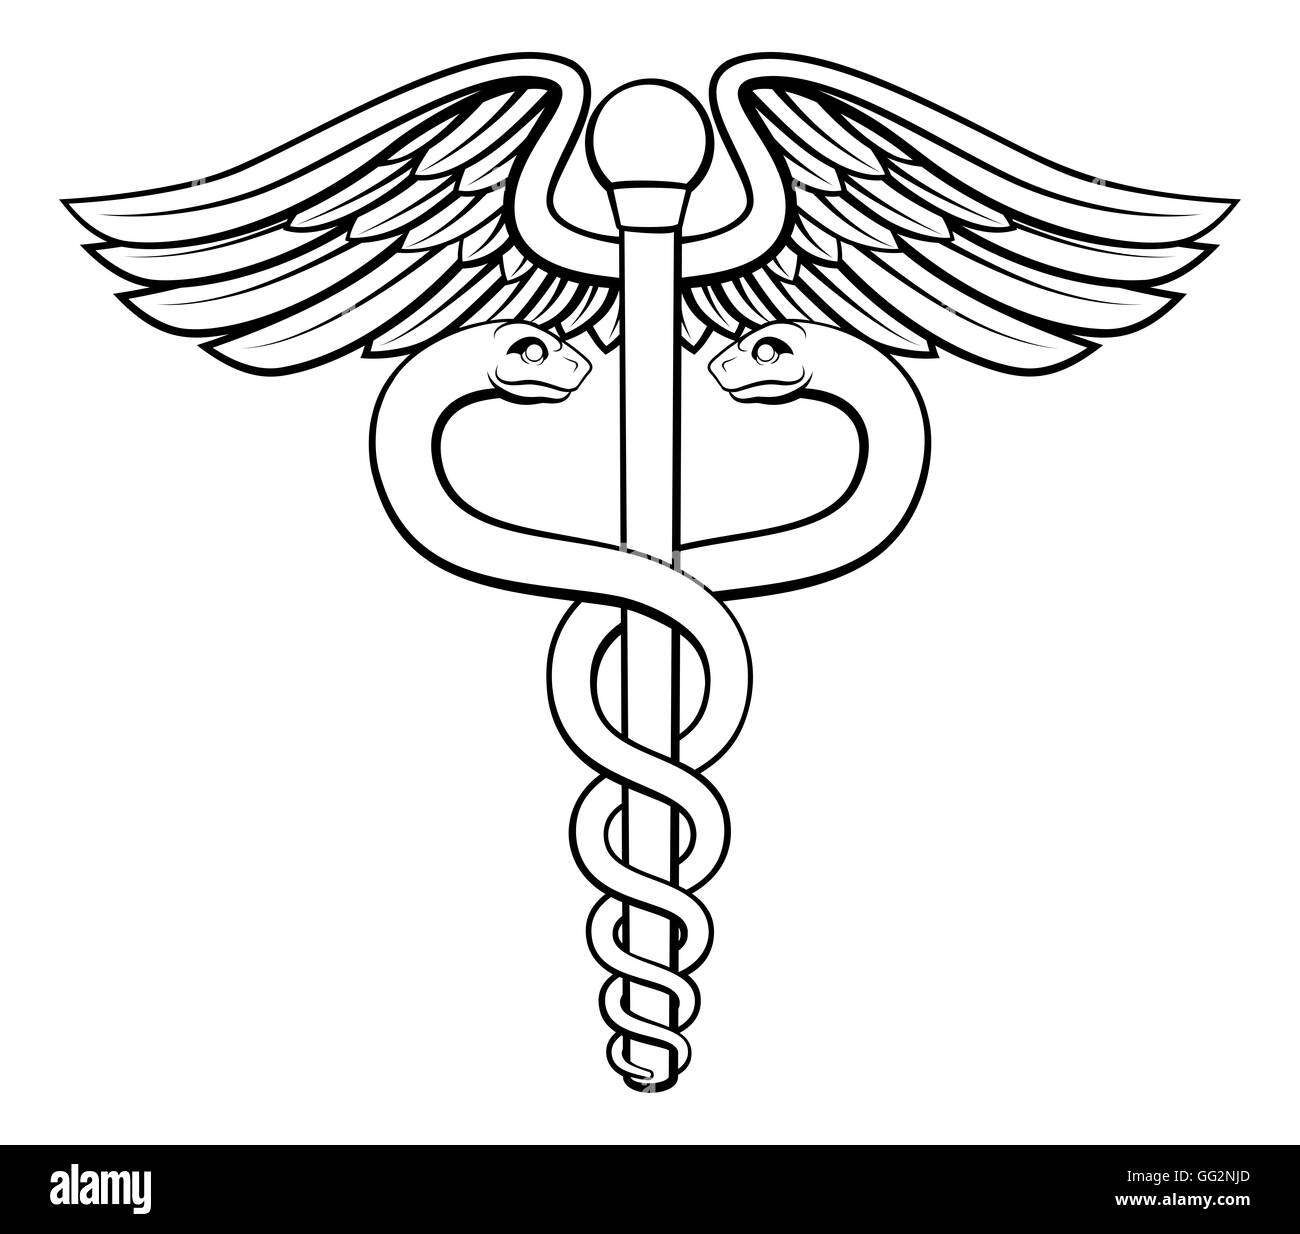 An illustration of the caduceus symbol of two snakes intertwined an illustration of the caduceus symbol of two snakes intertwined around a winged rod associated with healing and medicine buycottarizona